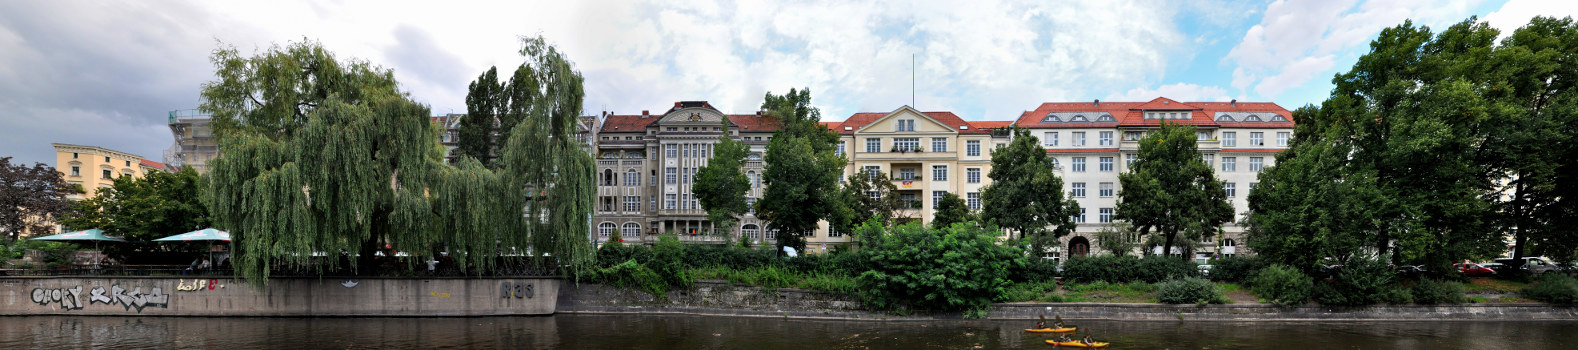 SITE LOCATION  Paul-Lincke-Ufer 43, 10999 Berlin, Kreuzberg with a view of the Landwehr Canal